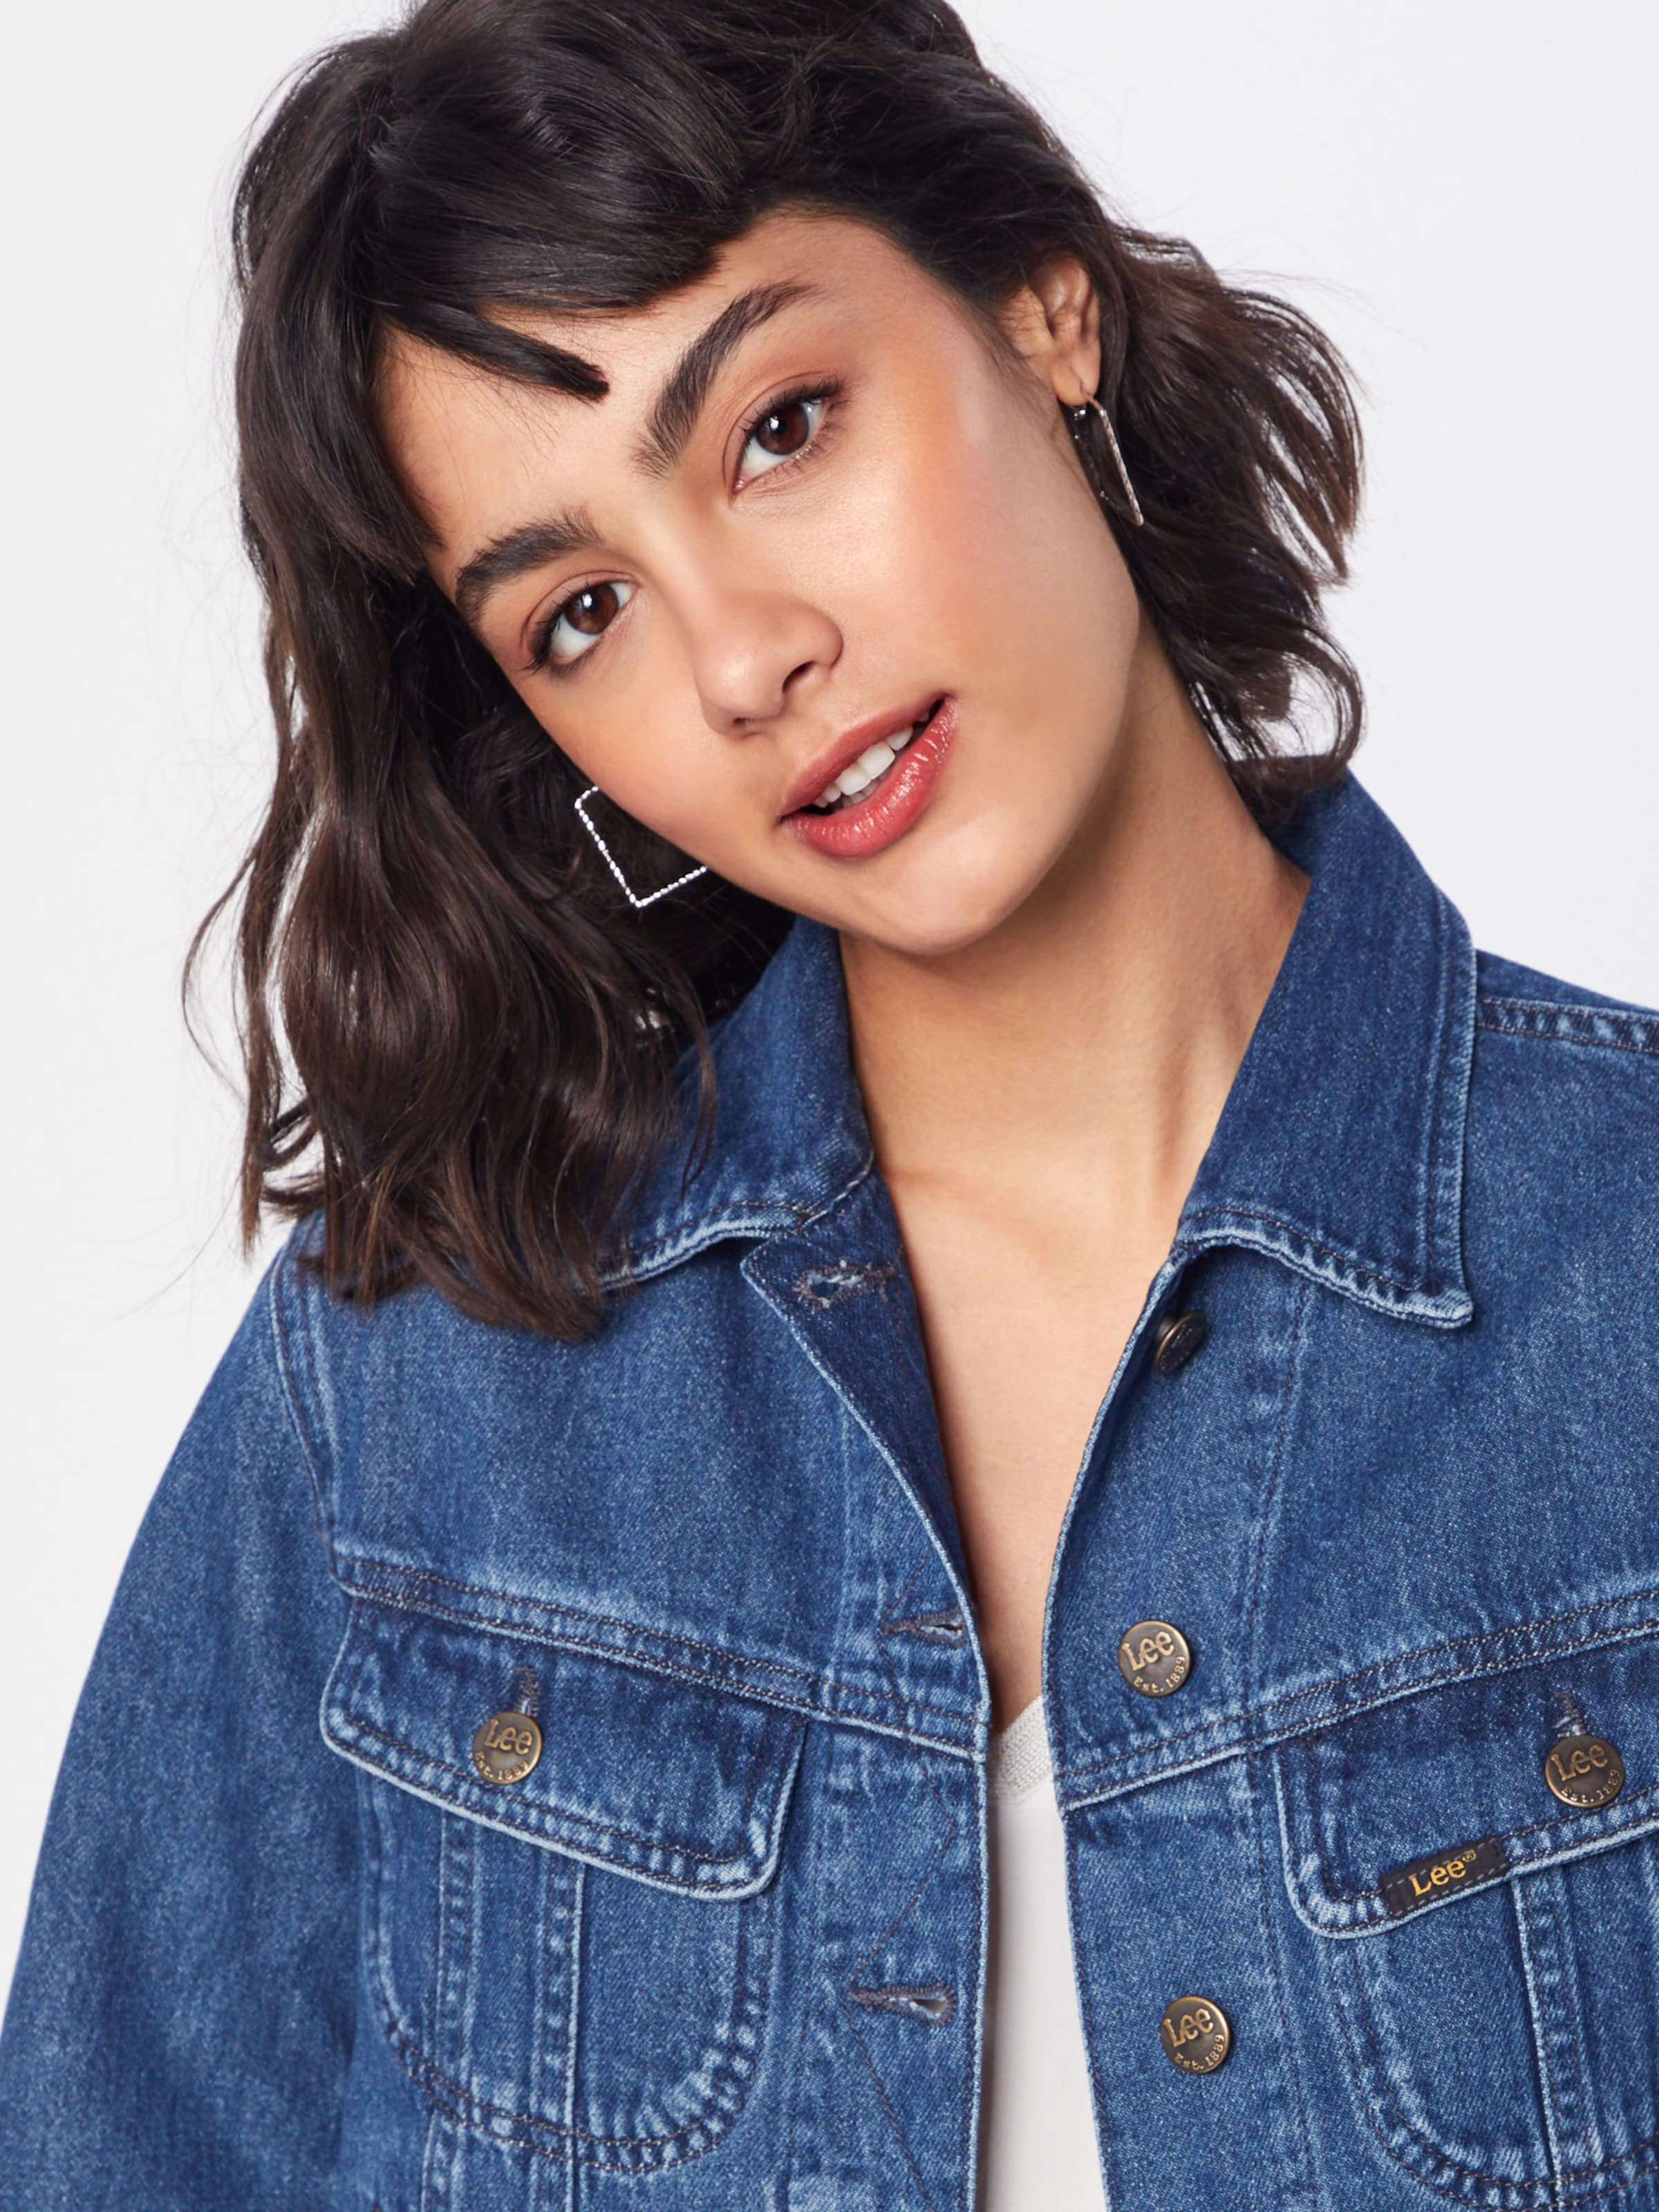 saison En Rider Jacket Bleu Mi Tic' Lee 'cropped Denim Veste gYf6by7